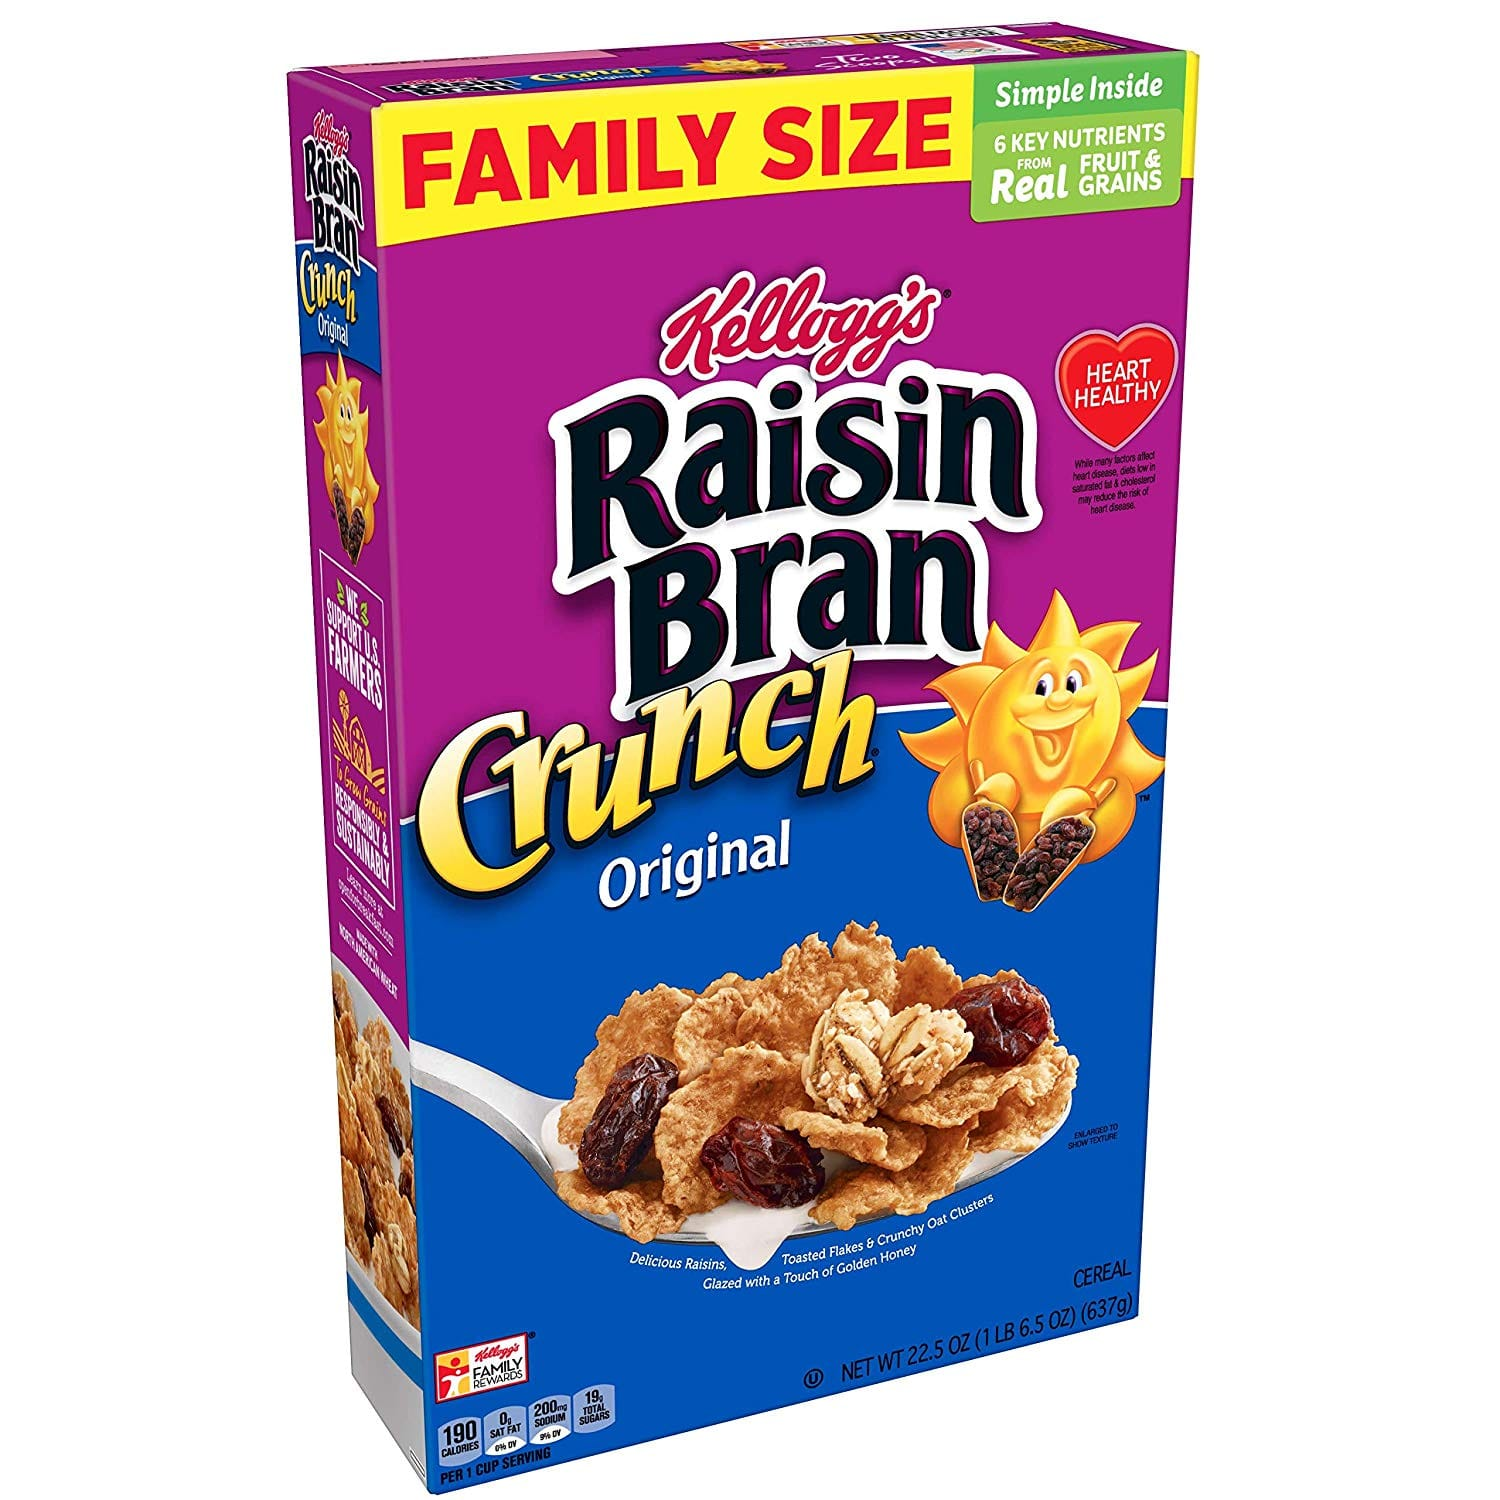 16-Count 22.5-oz Kellogg's Raisin Bran Crunch Breakfast Cereal $25 or less + free s/h